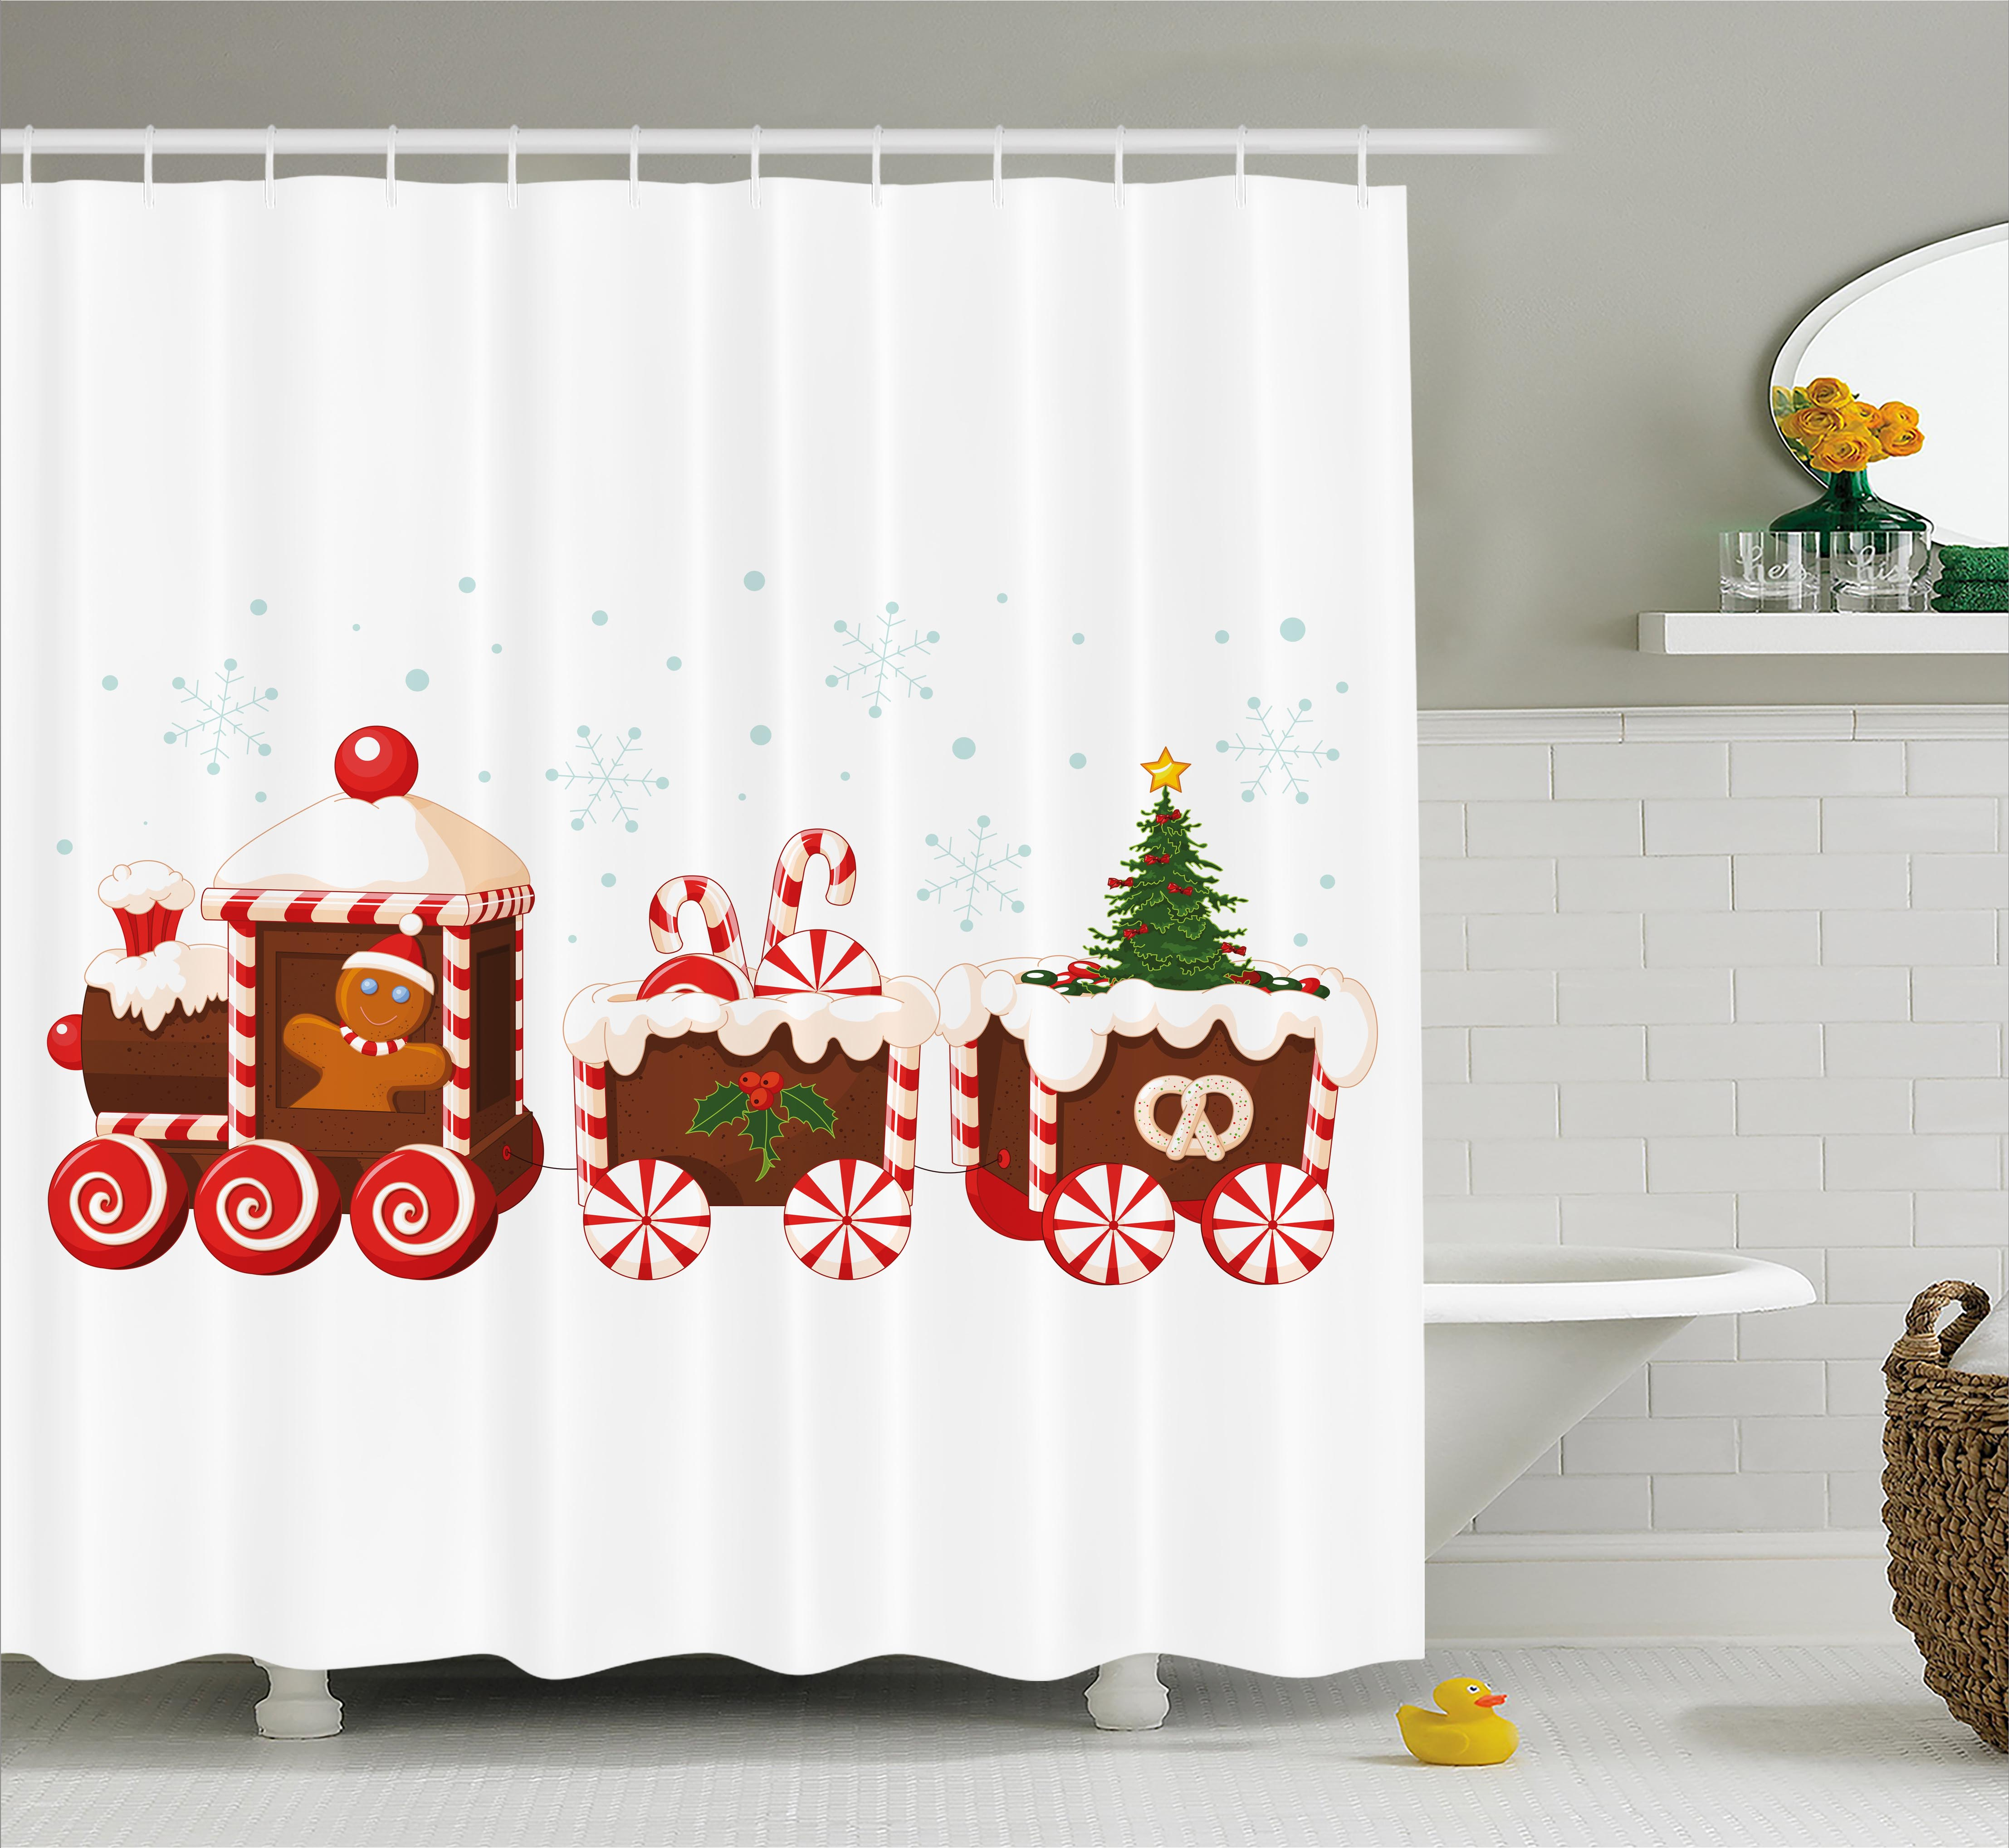 Christmas Shower Curtain Set, Train made of Gingerbread C...